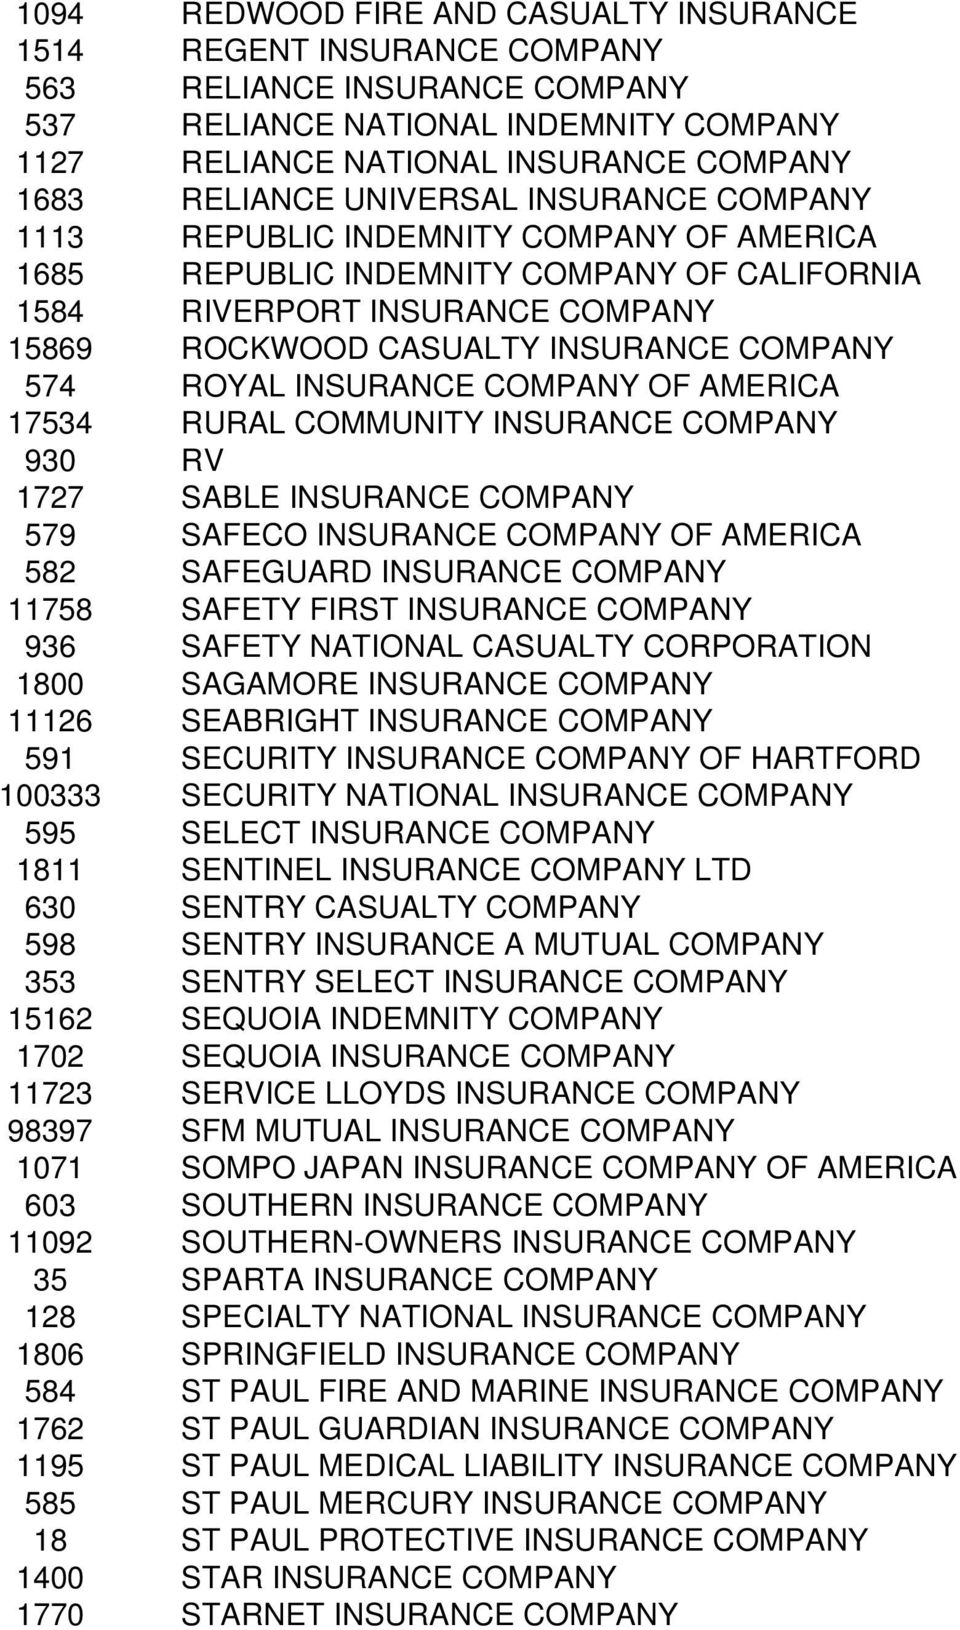 ROYAL INSURANCE COMPANY OF AMERICA 17534 RURAL COMMUNITY INSURANCE COMPANY 930 RV 1727 SABLE INSURANCE COMPANY 579 SAFECO INSURANCE COMPANY OF AMERICA 582 SAFEGUARD INSURANCE COMPANY 11758 SAFETY